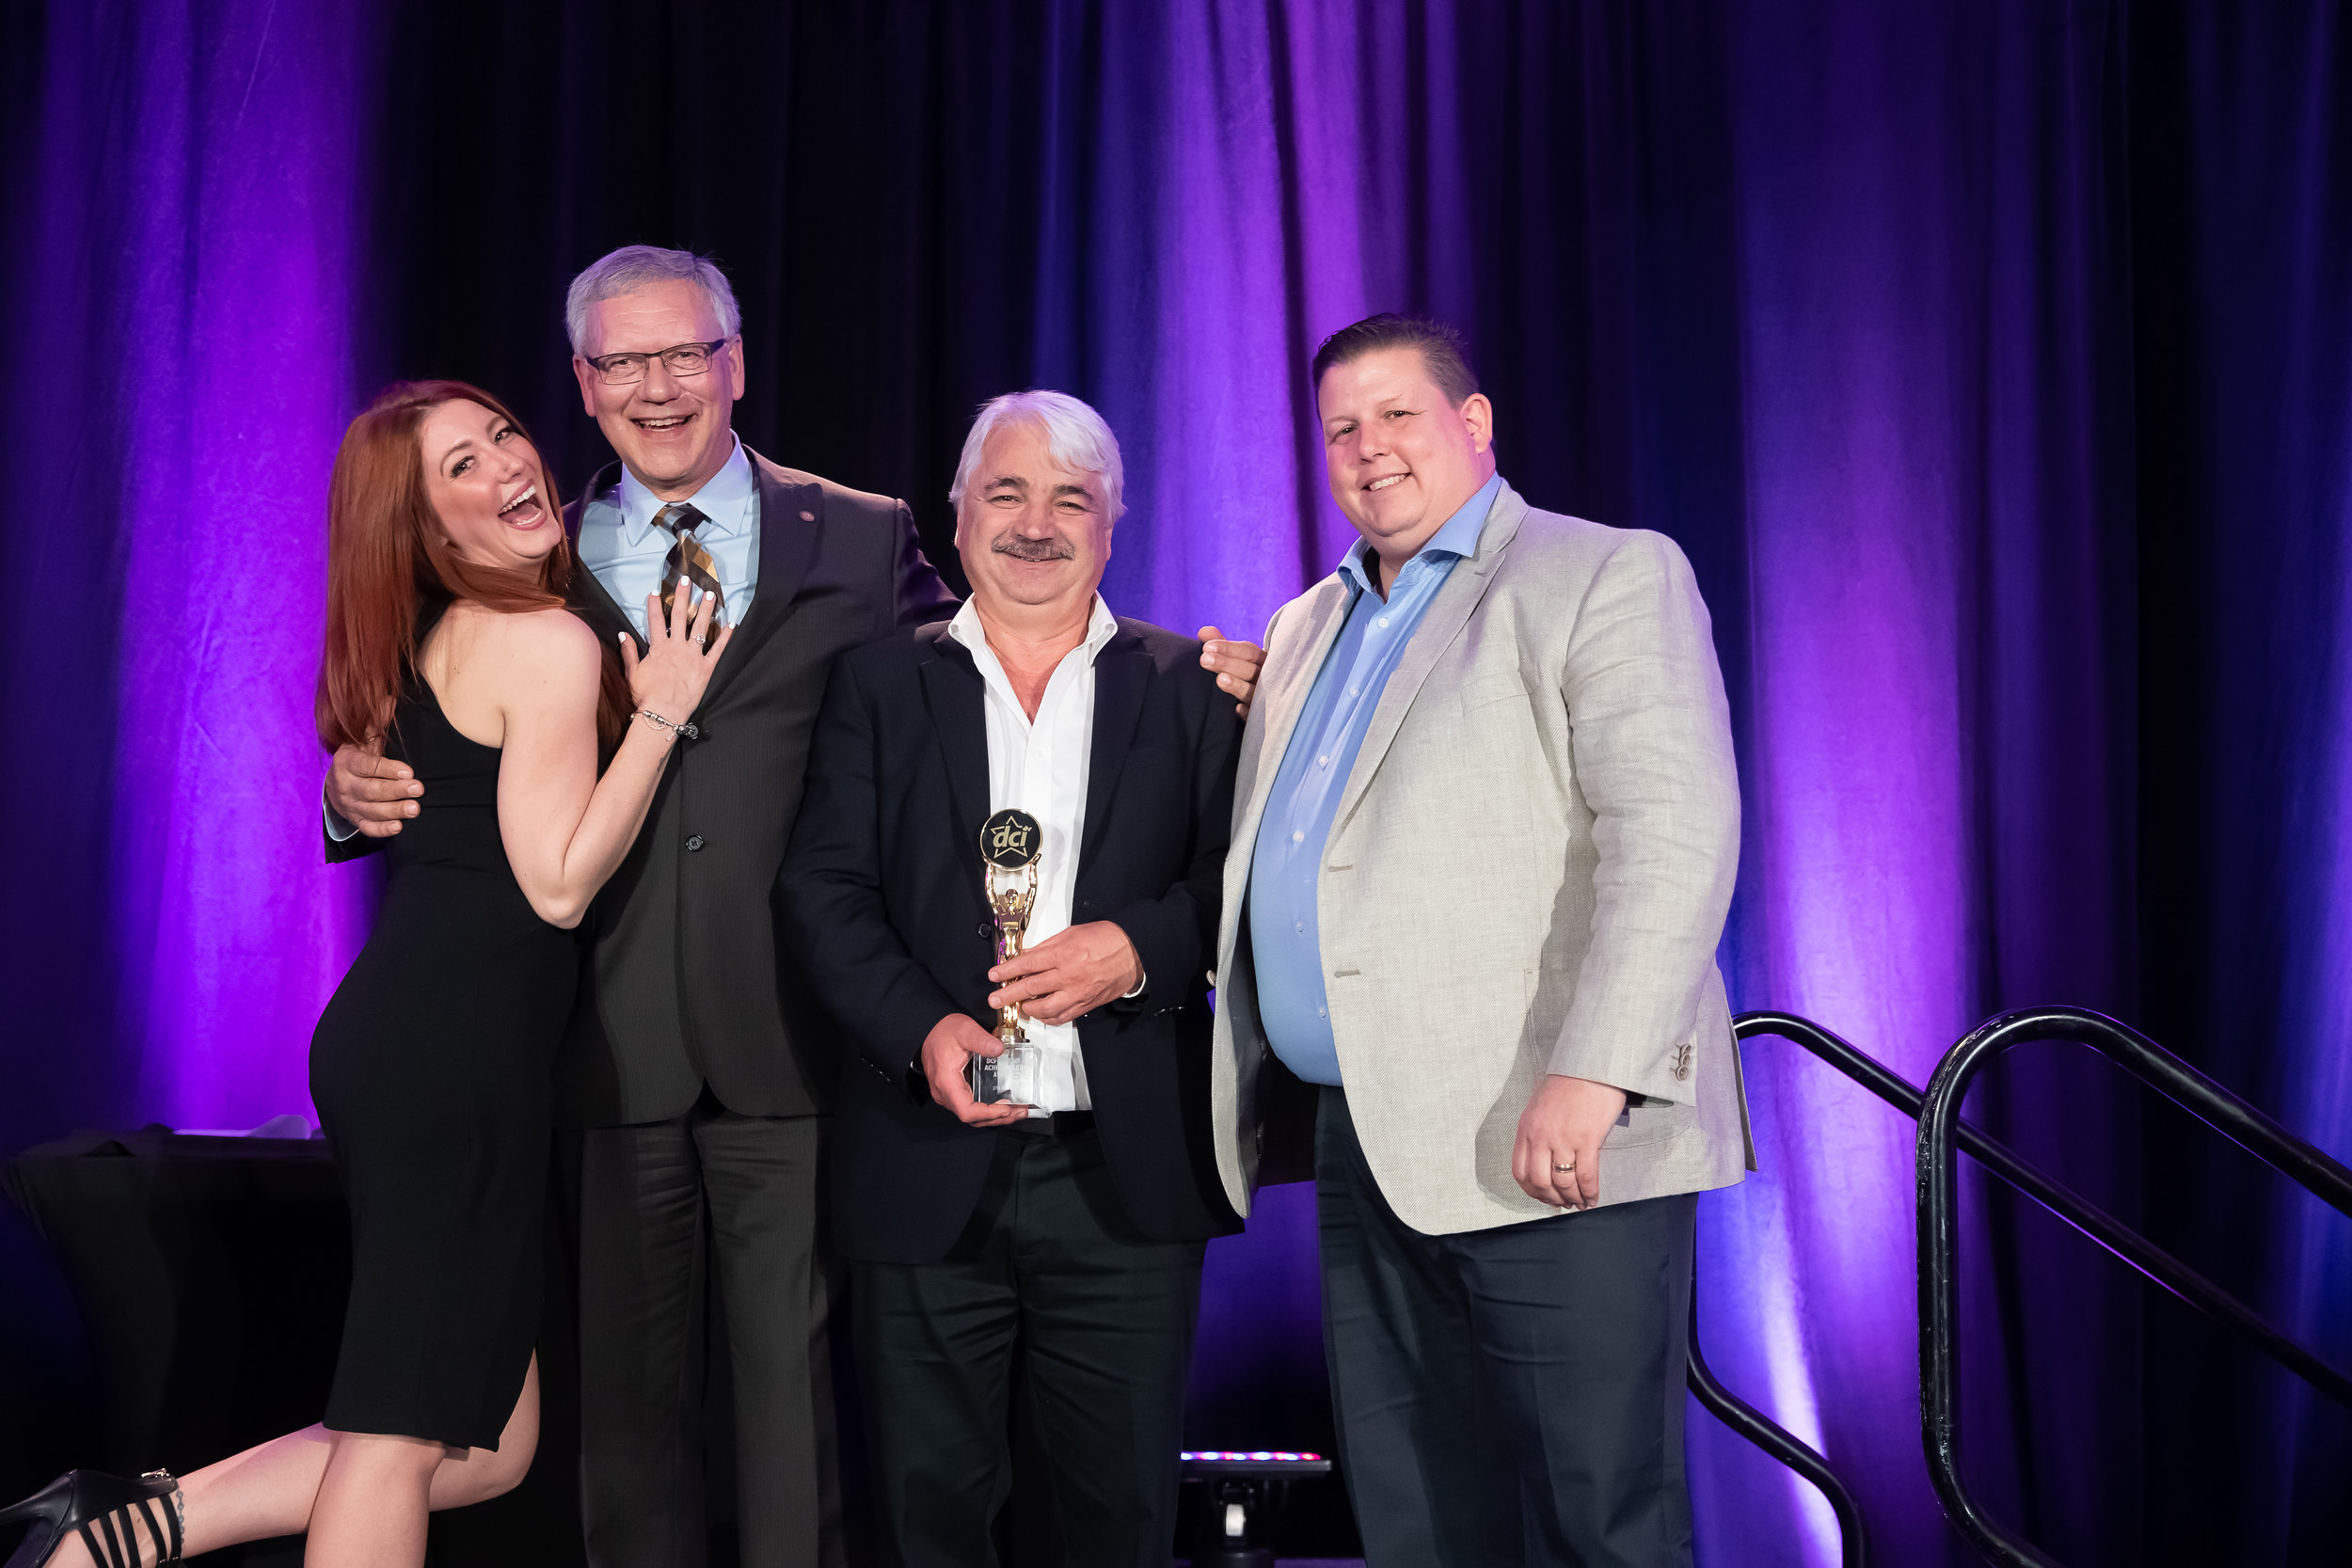 Star Awards Presenter Melissa Lynne-Schaffer, DCI Past Chair Dave Powell of Atlantic Grocery Distributors, Jim Bexis of Sun Valley Market and Barry Lanteigne of DCI